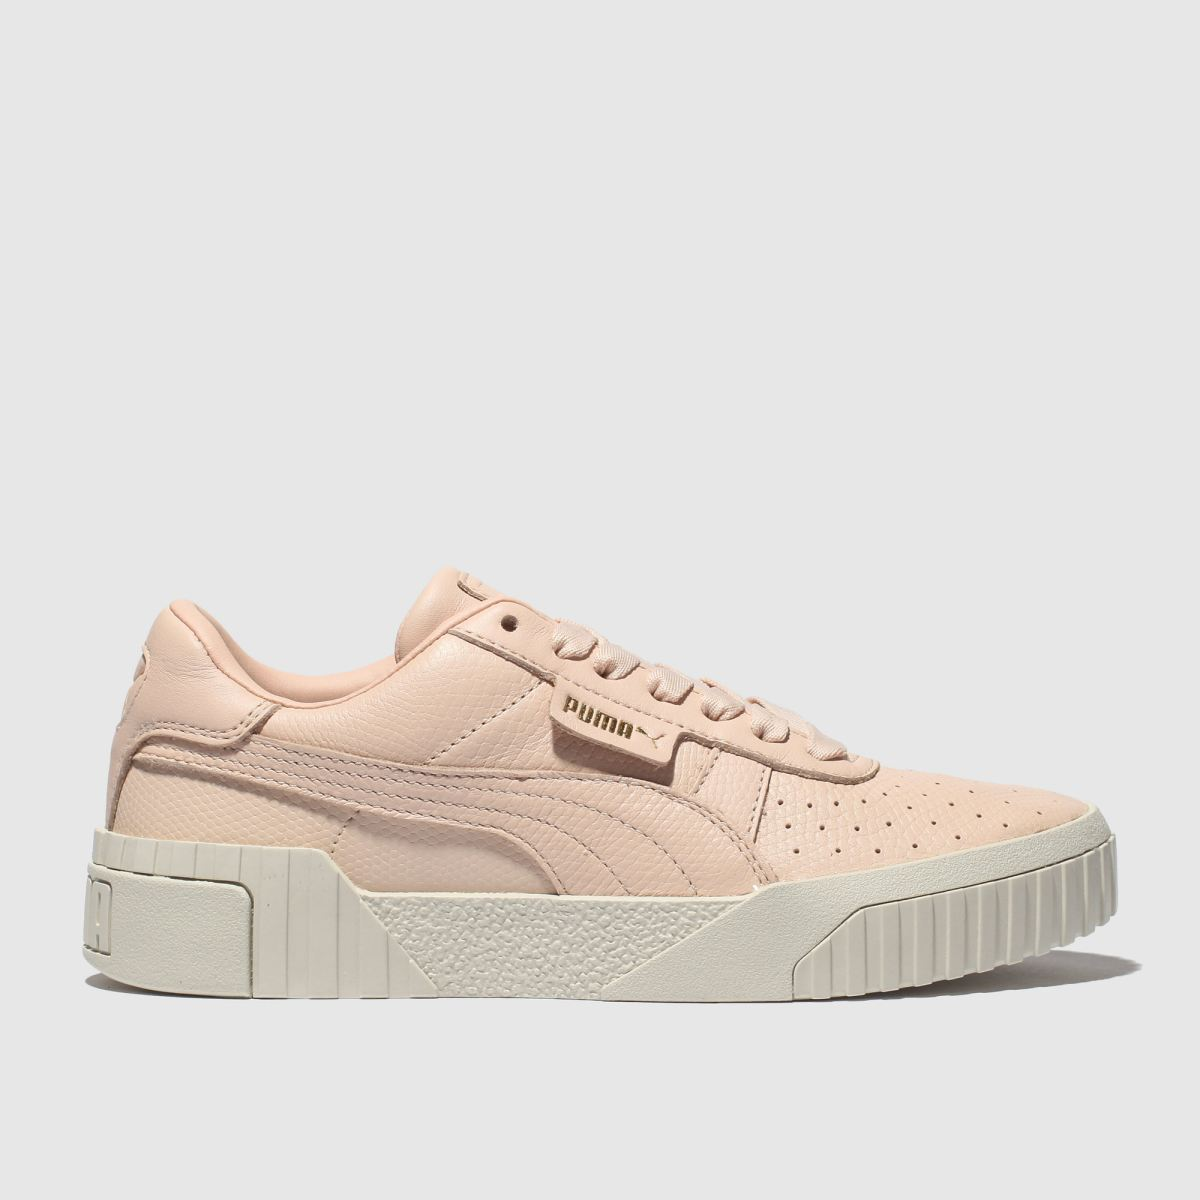 Puma Pale Pink Cali Leather Trainers